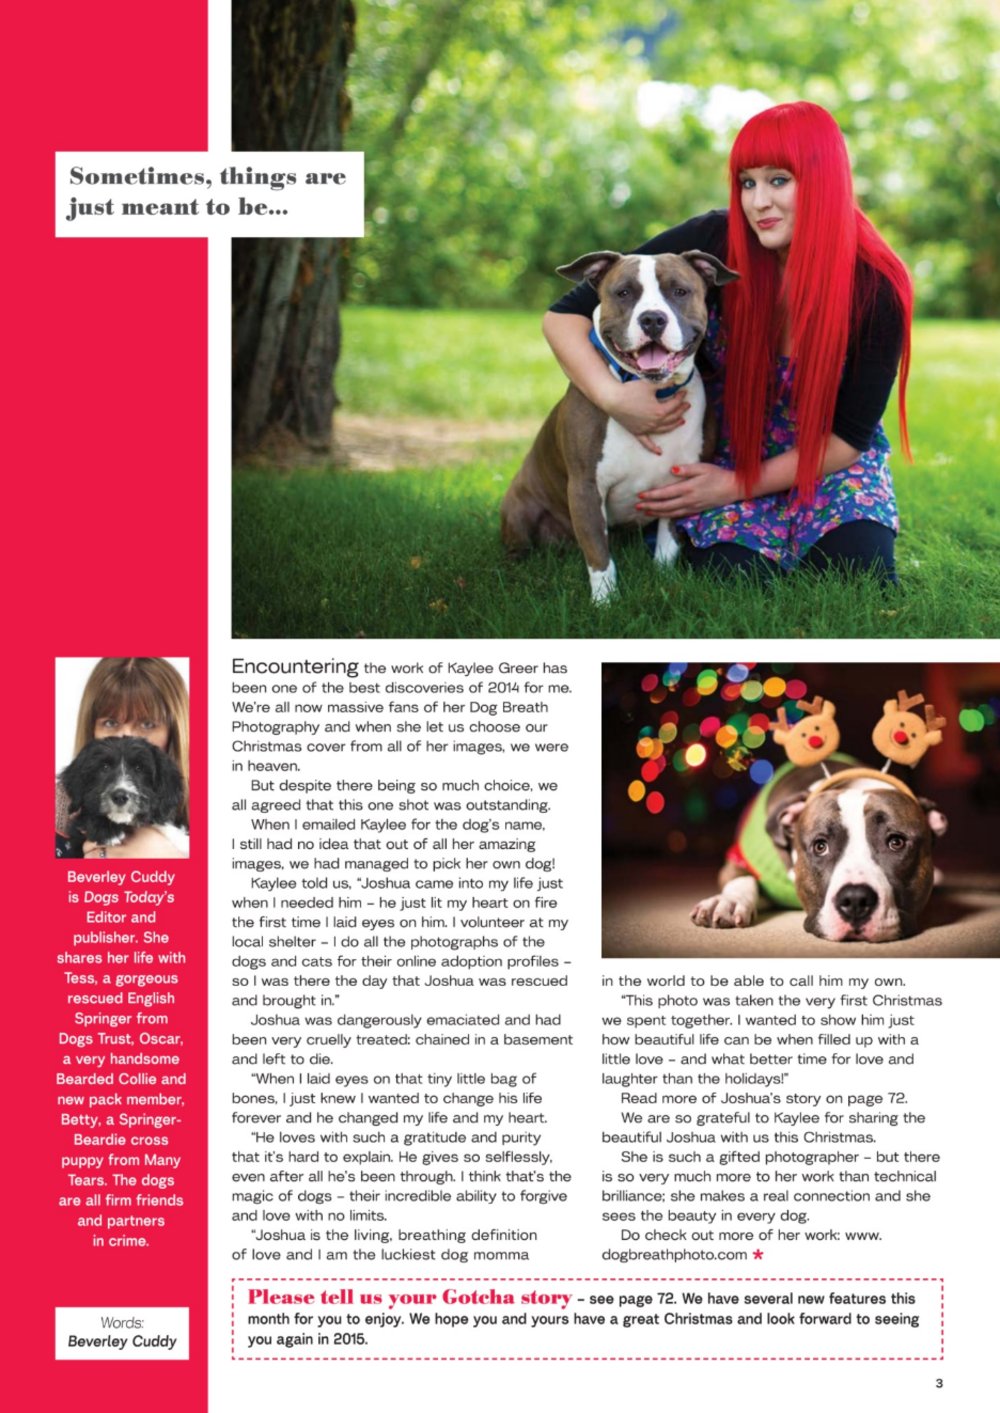 Writeup from the Editor of Dogs Today Magazine - January 2015 issue